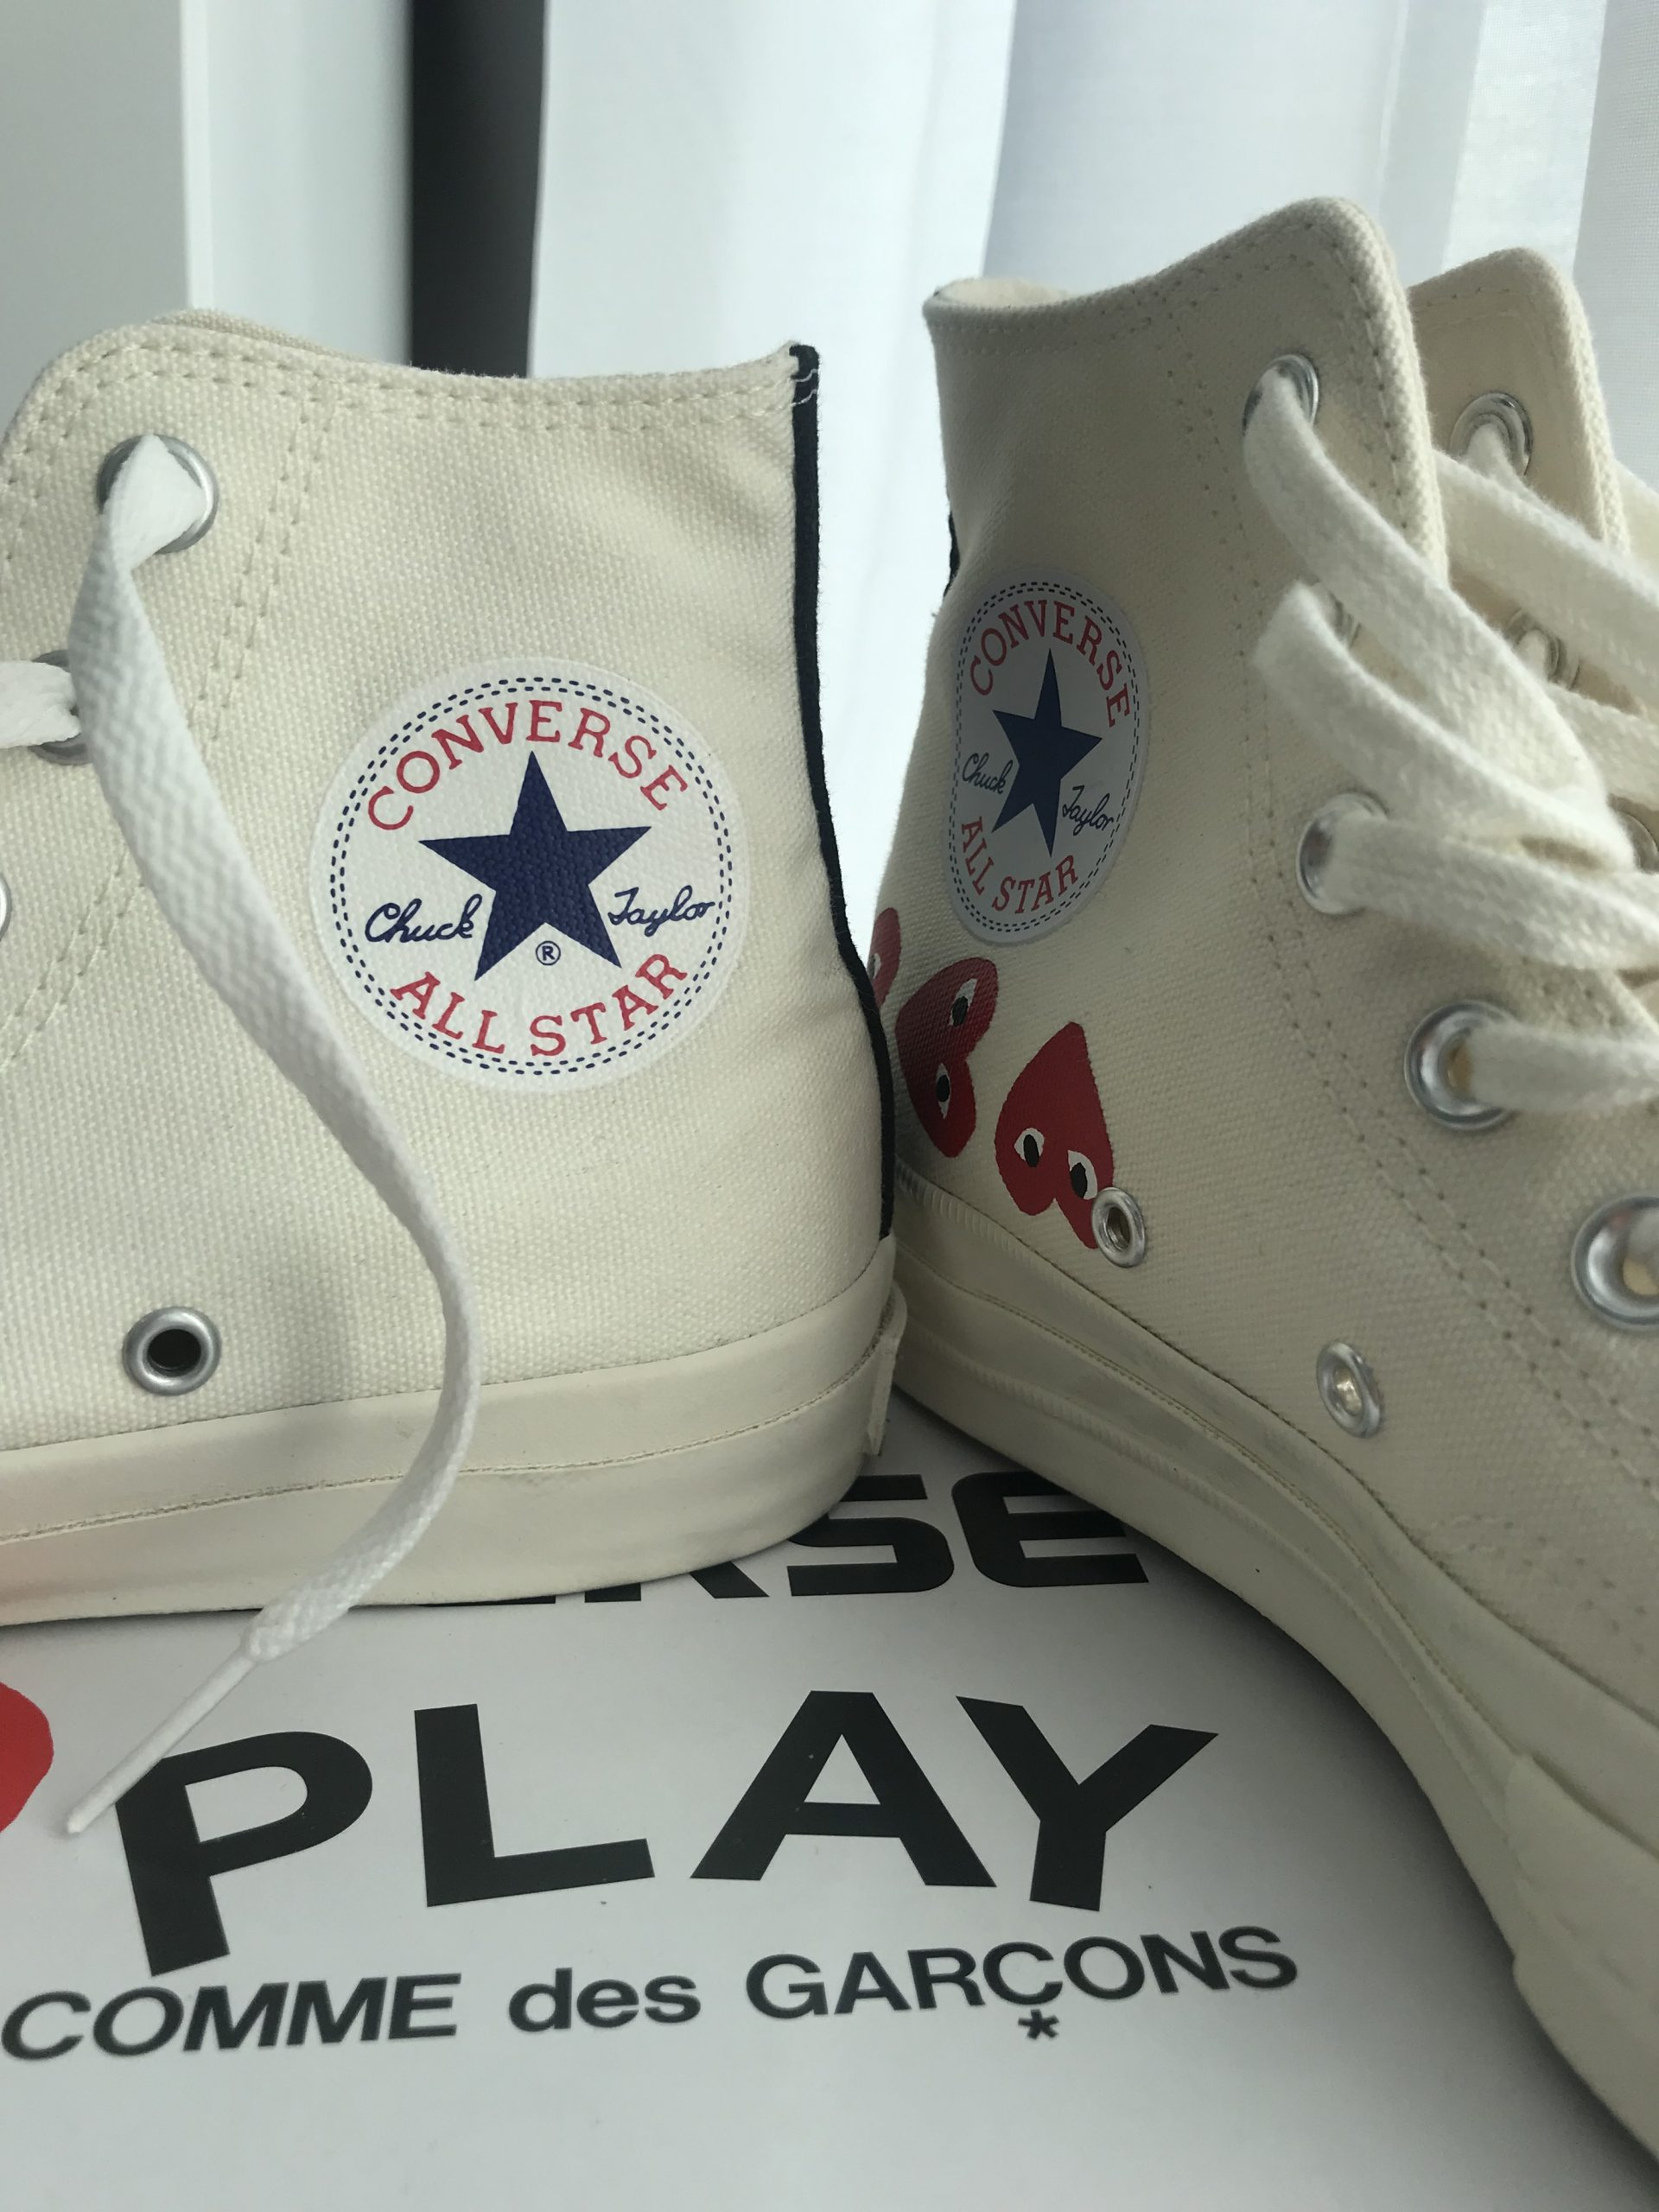 The Japanese CDG Play Converse vs. the